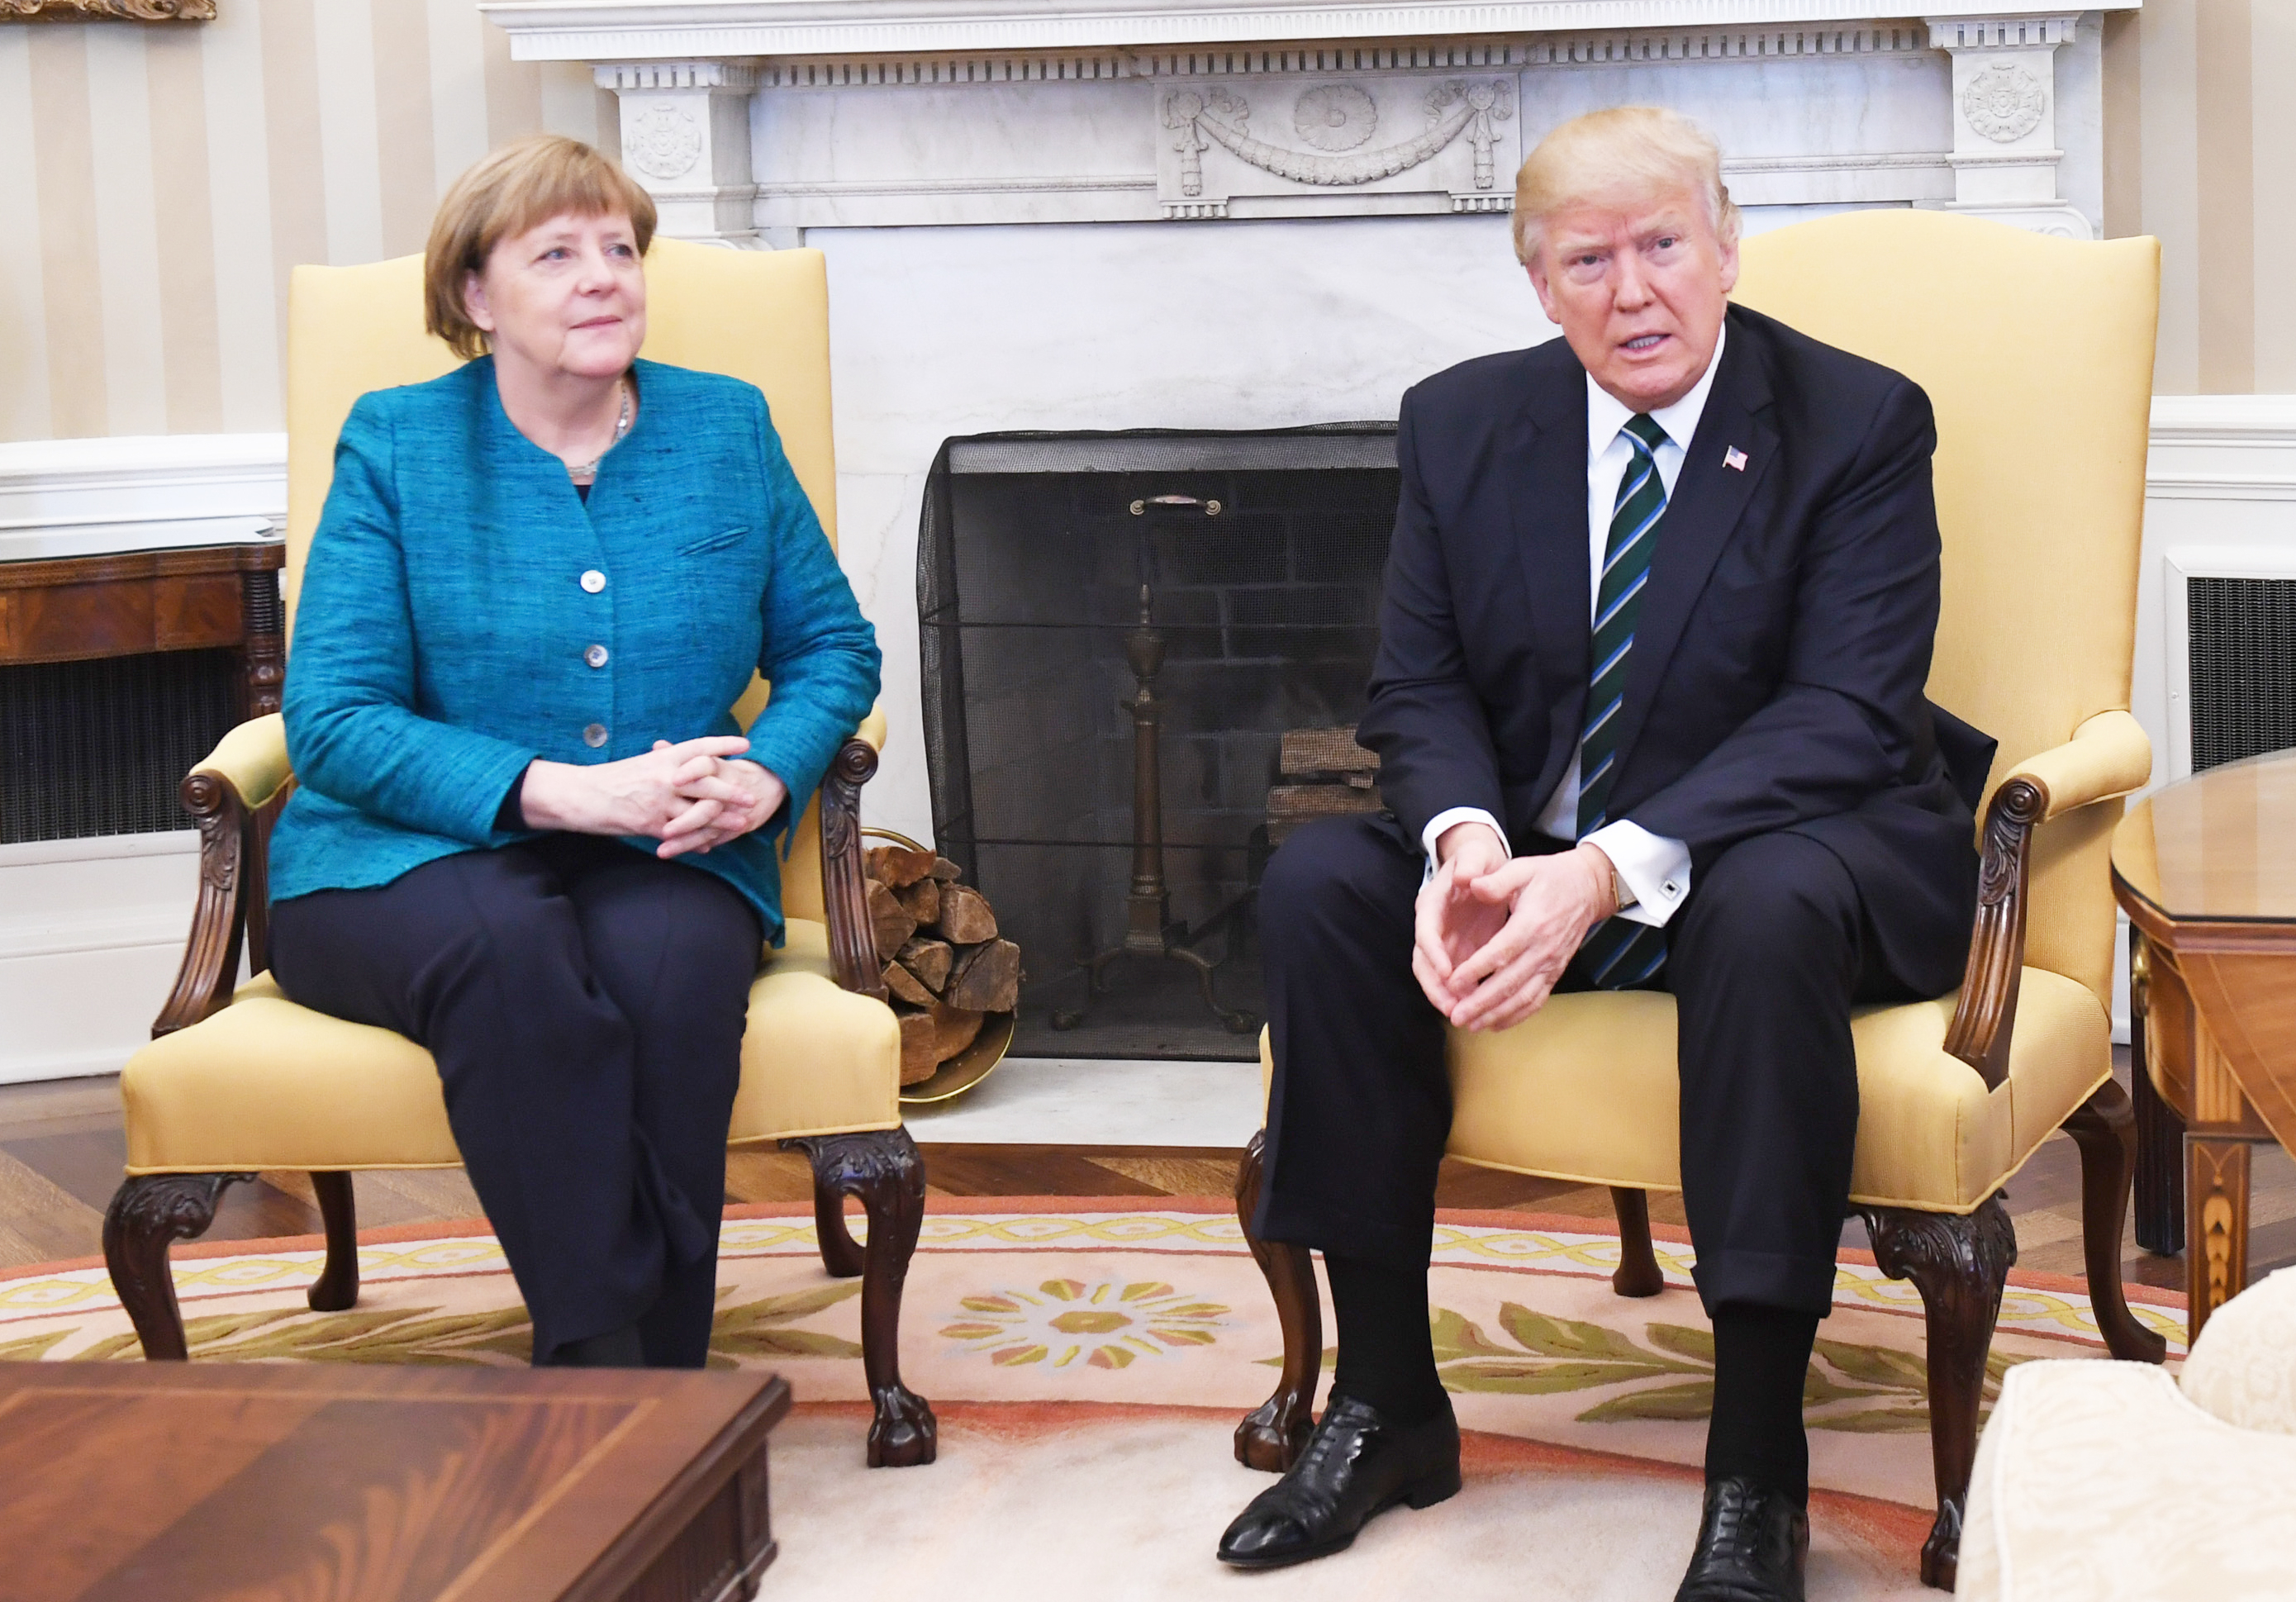 U.S. President Donald Trump, speaks while Angela Merkel, Germany's chancellor, left, listens during a meeting in the Oval Office of the White House in Washington, D.C., U.S., on Friday, March 17, 2017.